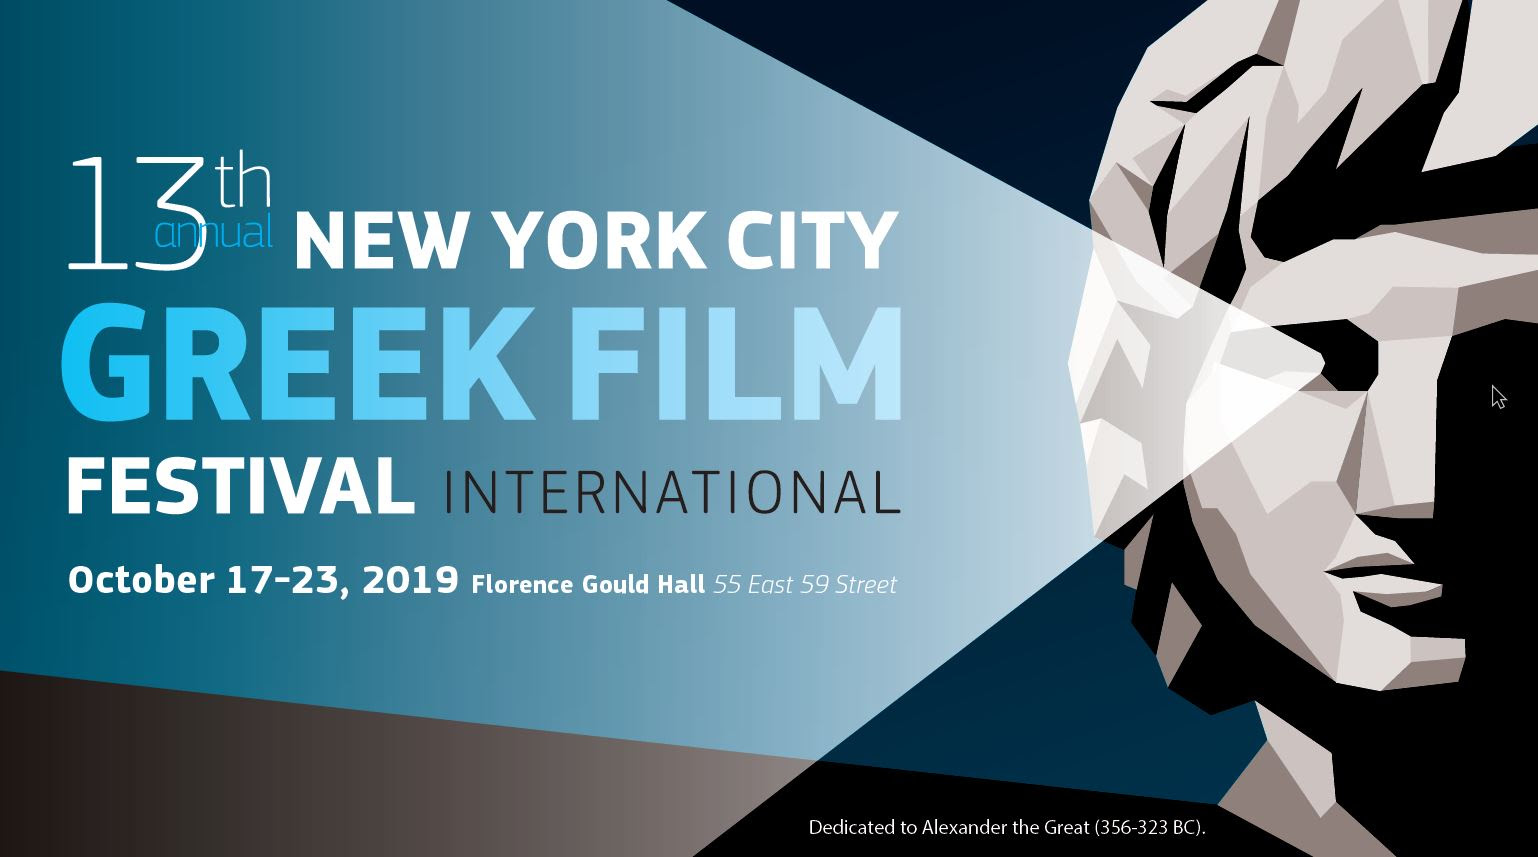 NYC GR Film Festival: THE LEGEND OF ALEXANDER THE GREAT AS ANCIENT GREEK AND BYZANTINE LEGACY